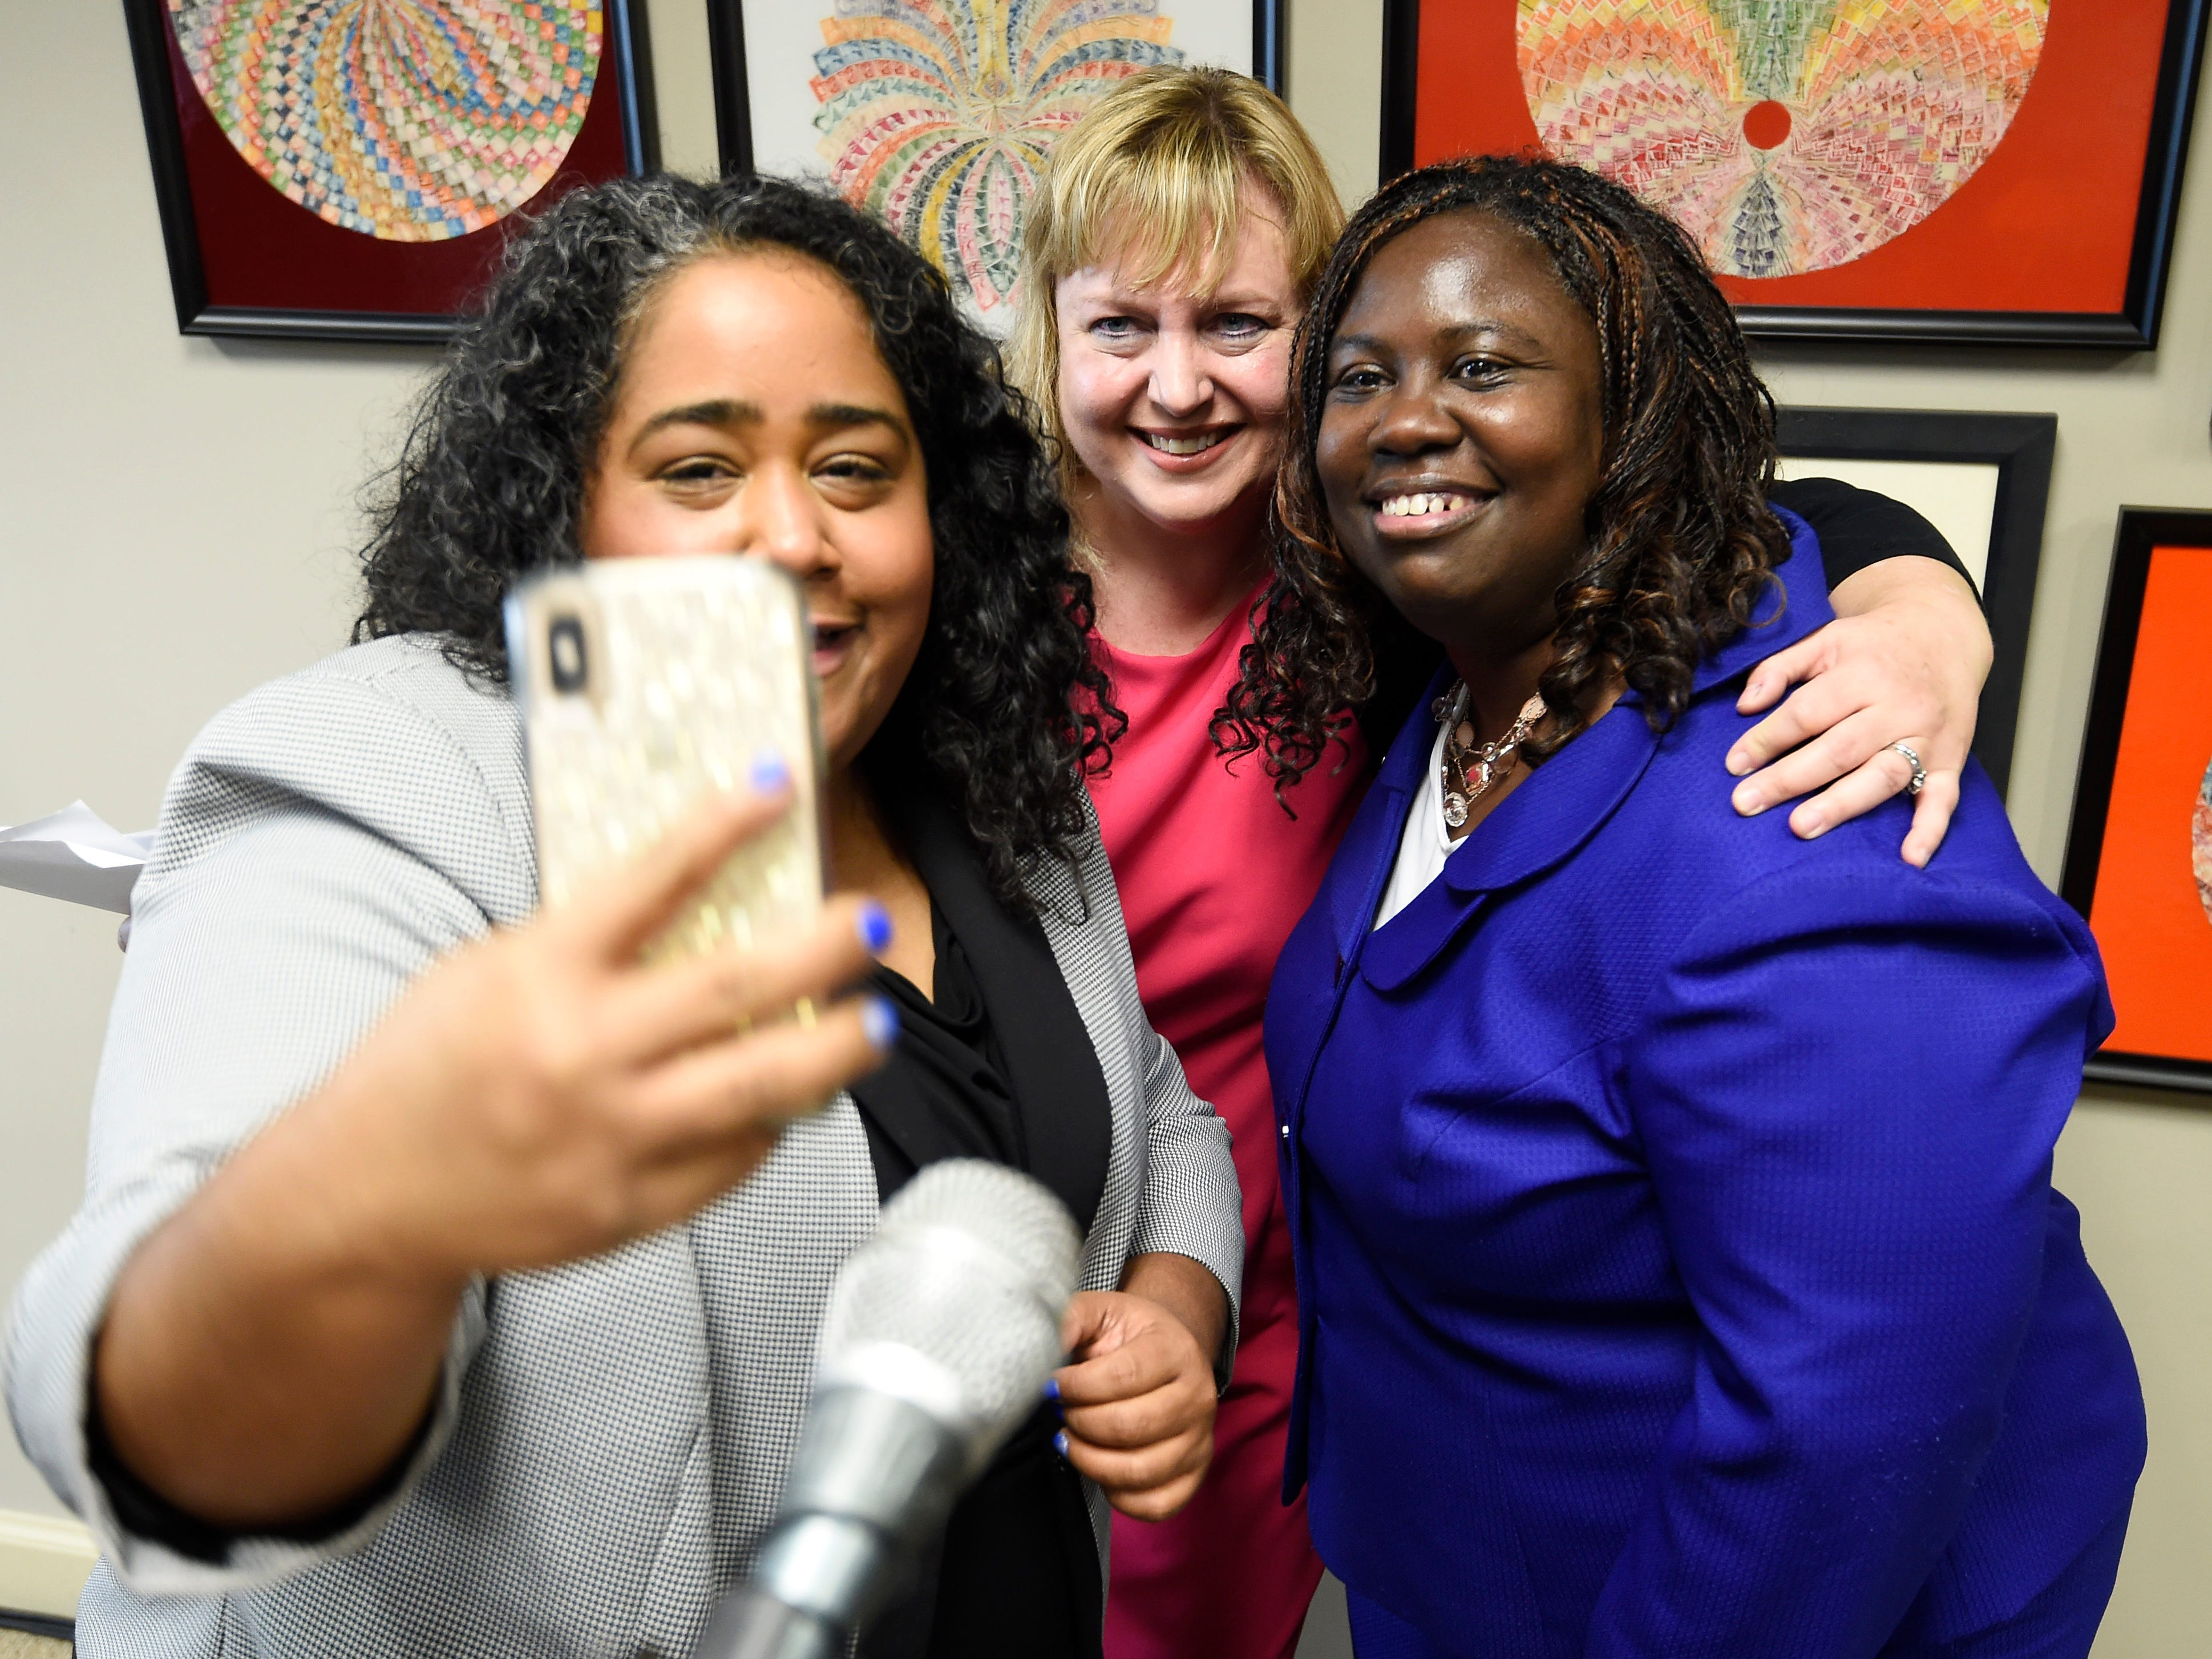 State Sen. Raumesh Akbari takes a selfie with Juvenile Court Administrator Kathy Sinback and Juvenile Court Judge Sheila Calloway at a press conference Monday, Jan. 7, 2019, in Nashville, Tenn., after Gov. Bill Haslam granted full clemency to Cyntoia Brown, and set an Aug. 7 release date for her from prison.